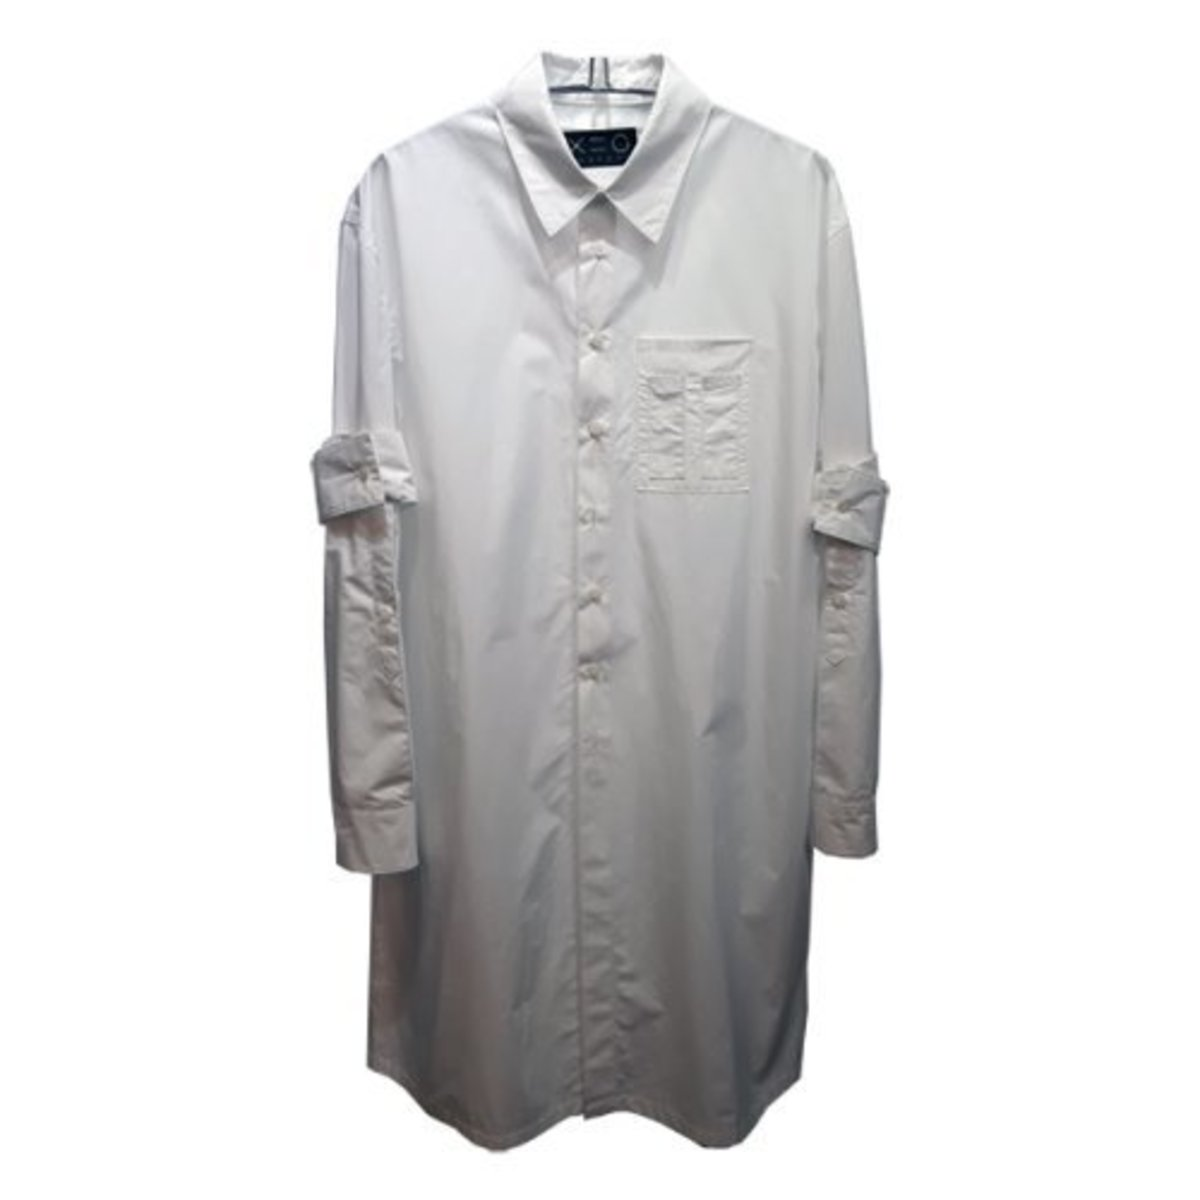 DOUBLE CUFFS LONG SHIRTS